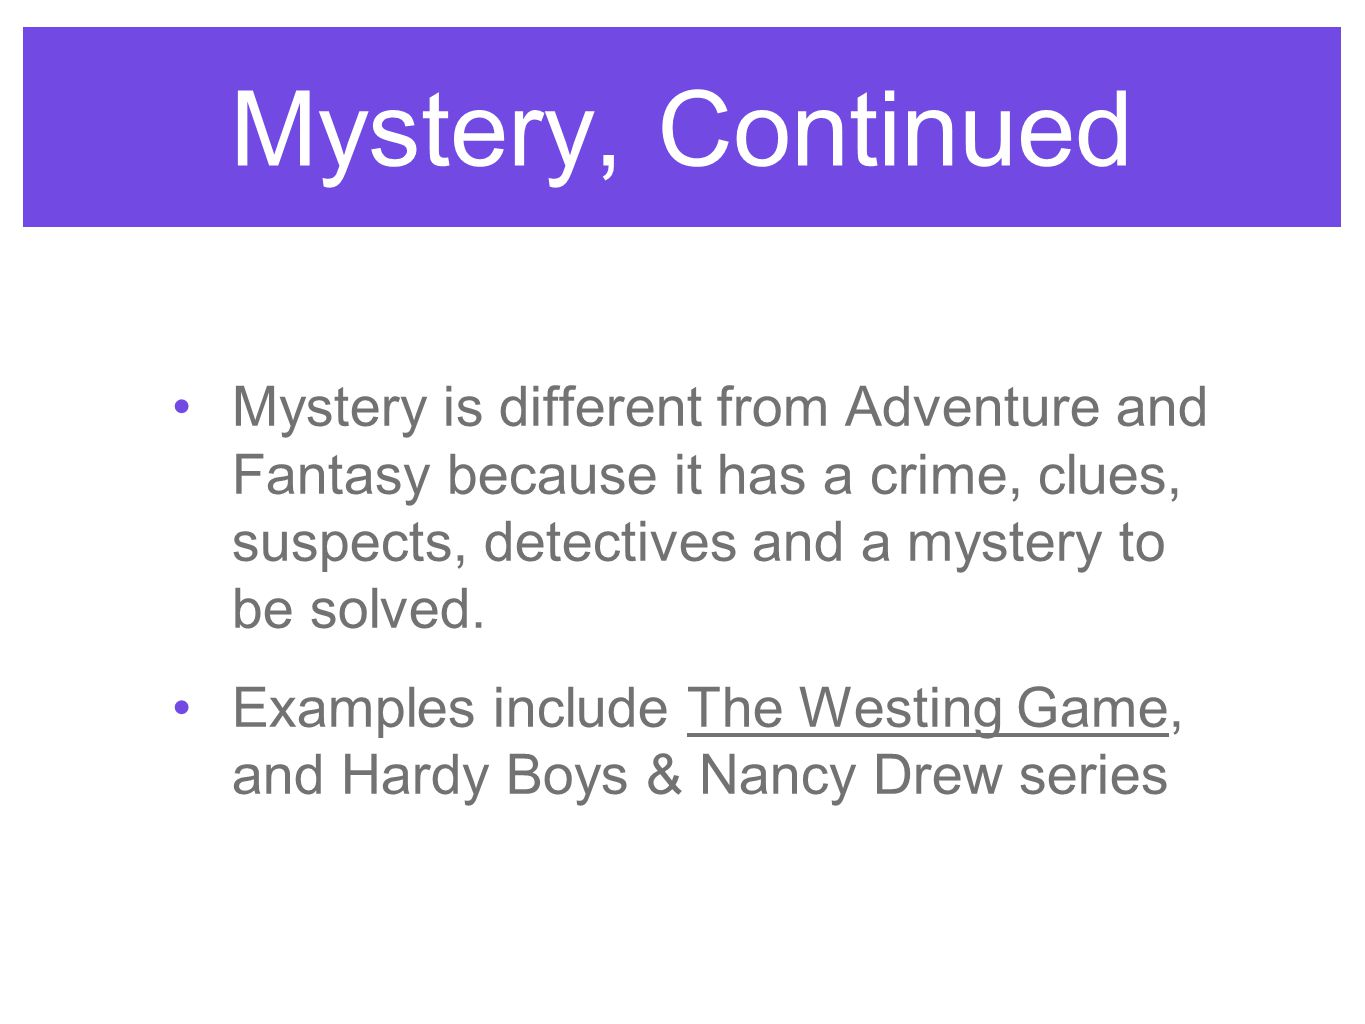 Mystery, Continued Mystery is different from Adventure and Fantasy because it has a crime, clues, suspects, detectives and a mystery to be solved.